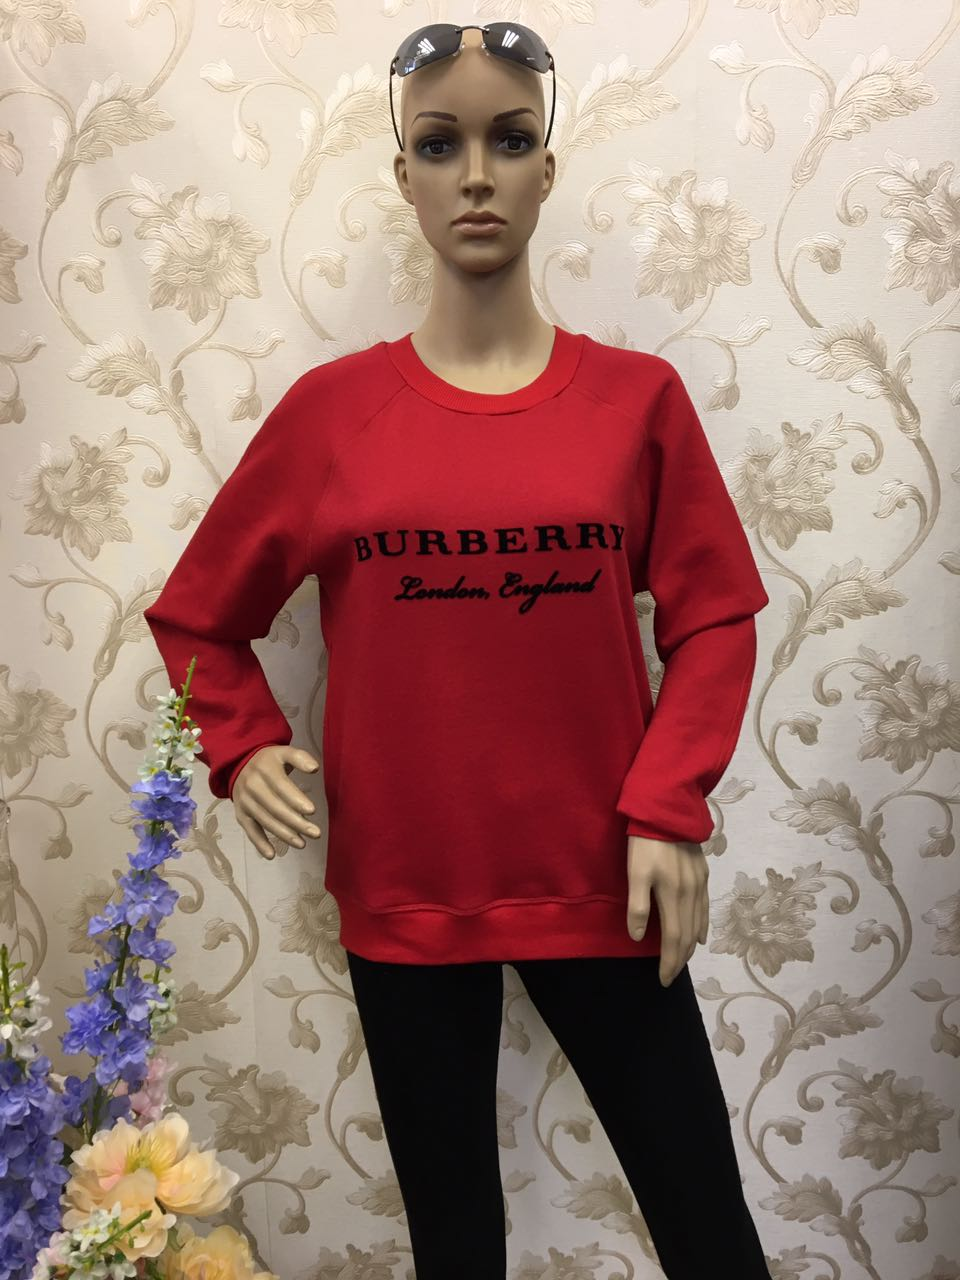 burberry-long-sleeve-red-pullover-with-embroidery-and-check-pattern